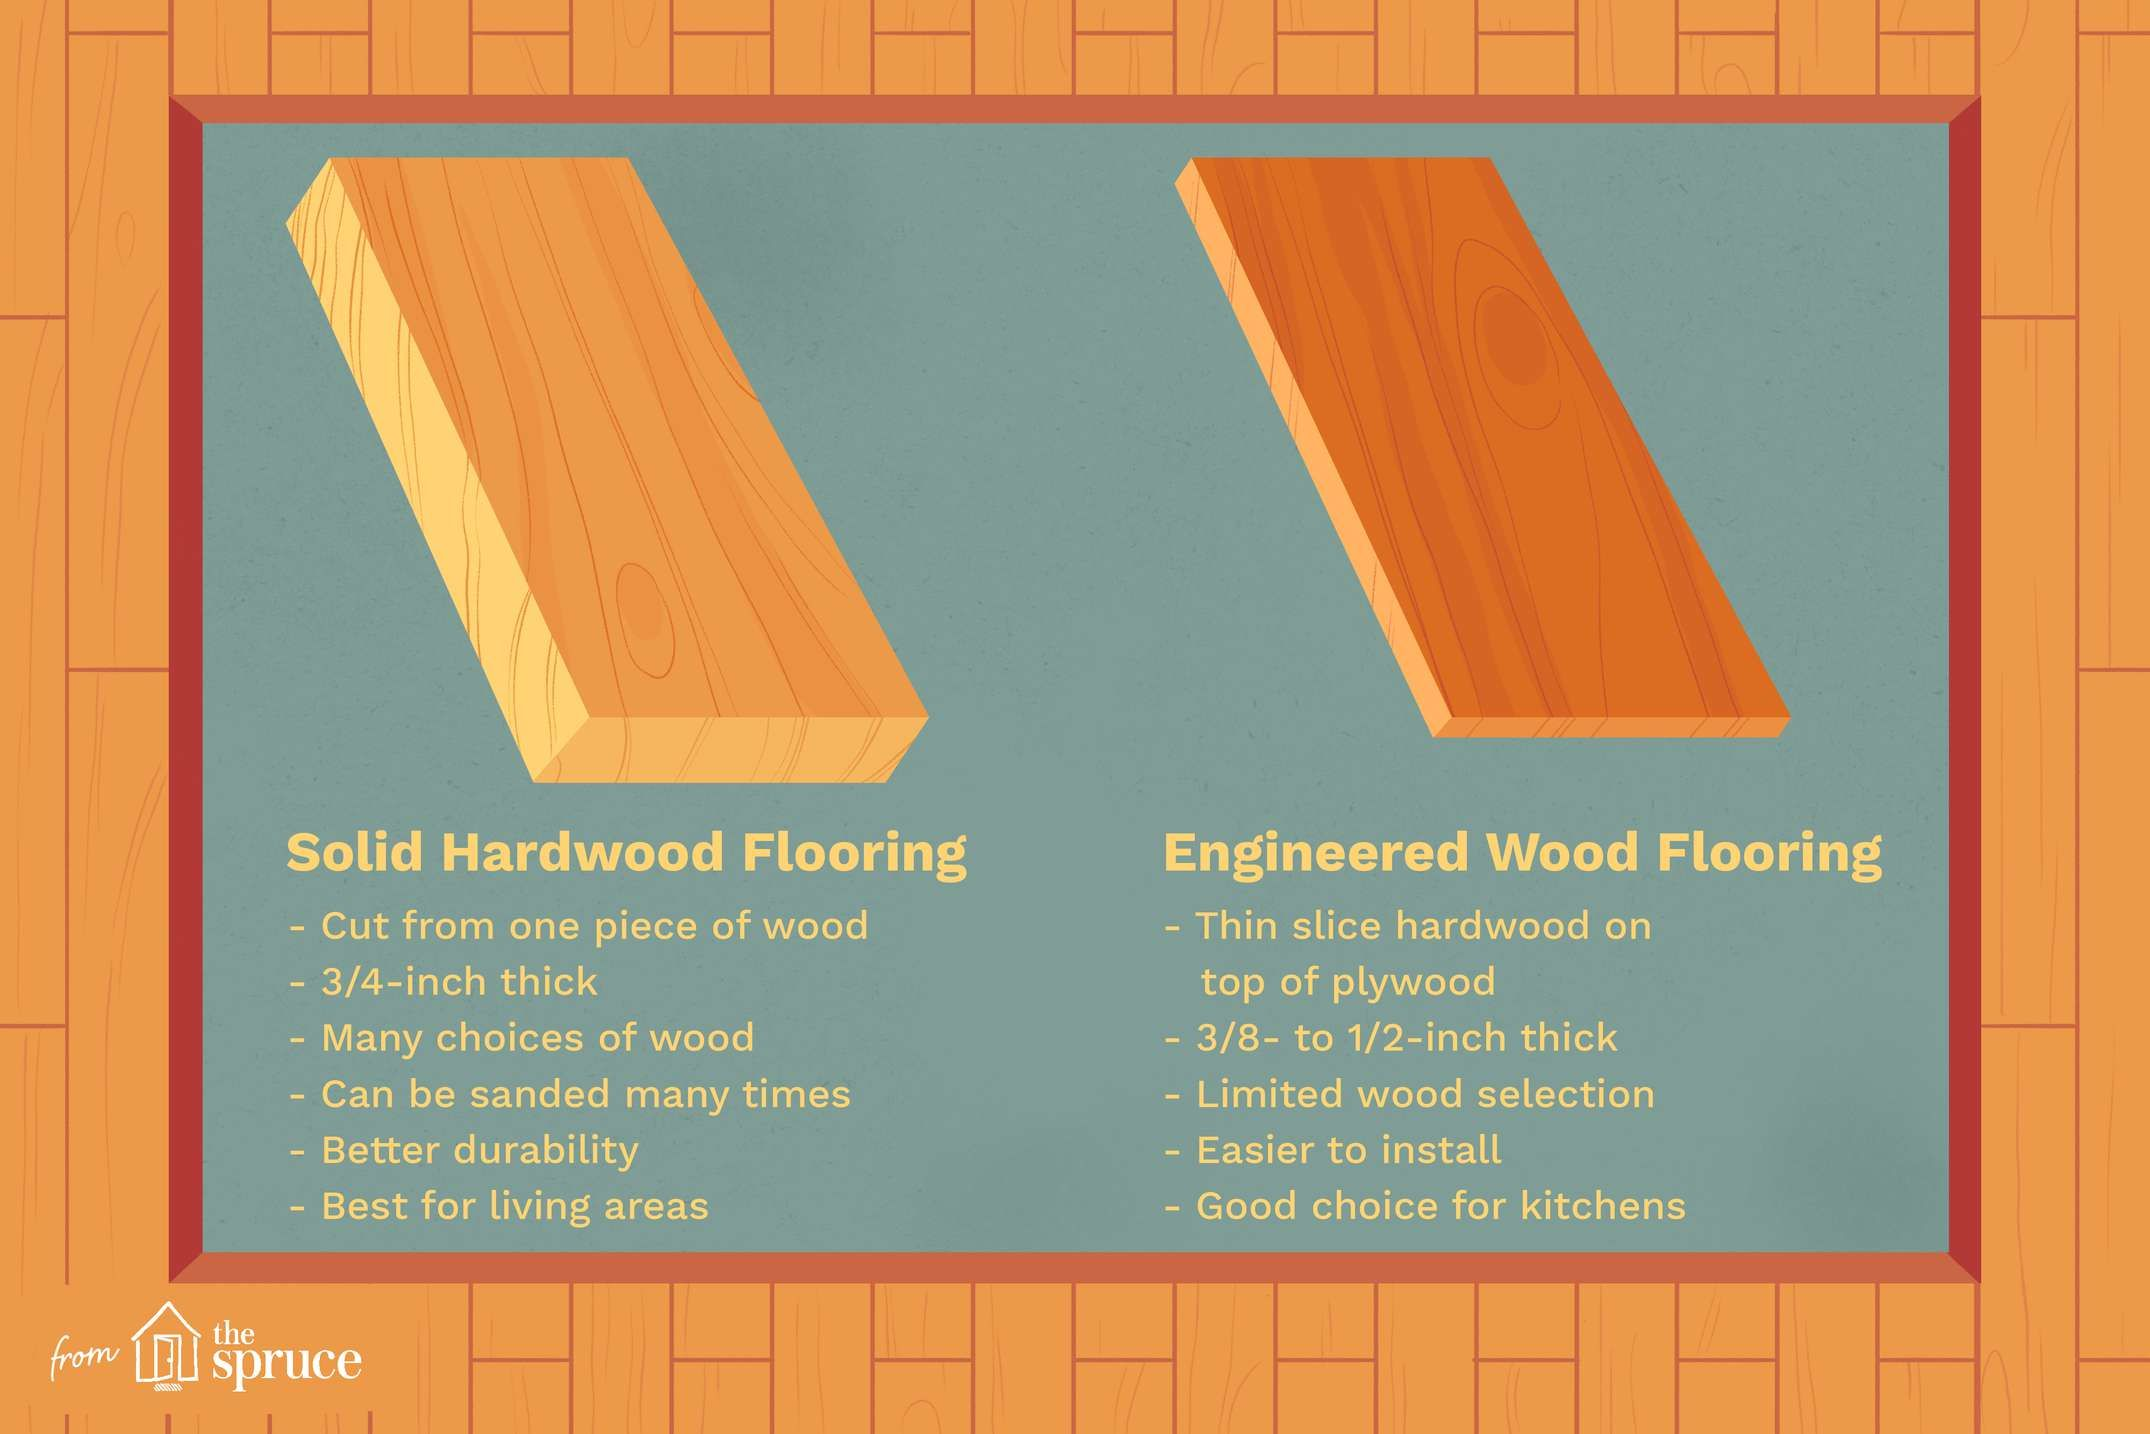 Engineered Wood Flooring vs. Solid Wood Flooring